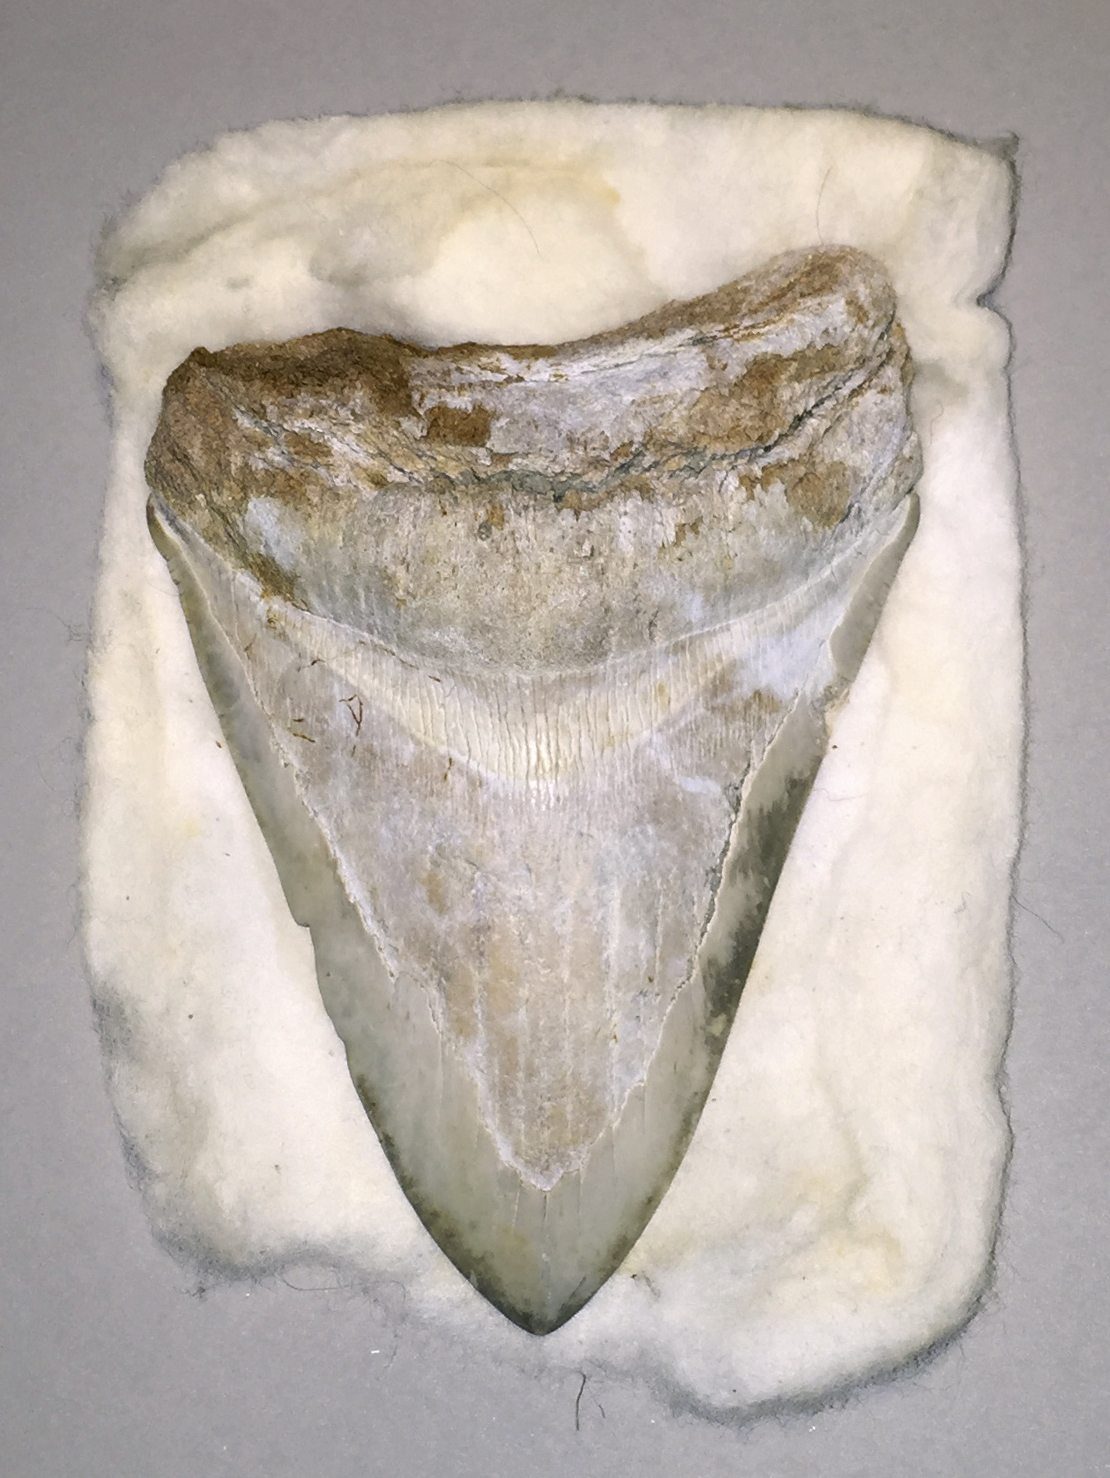 Fossilised megalodon tooth (Great White Shark)